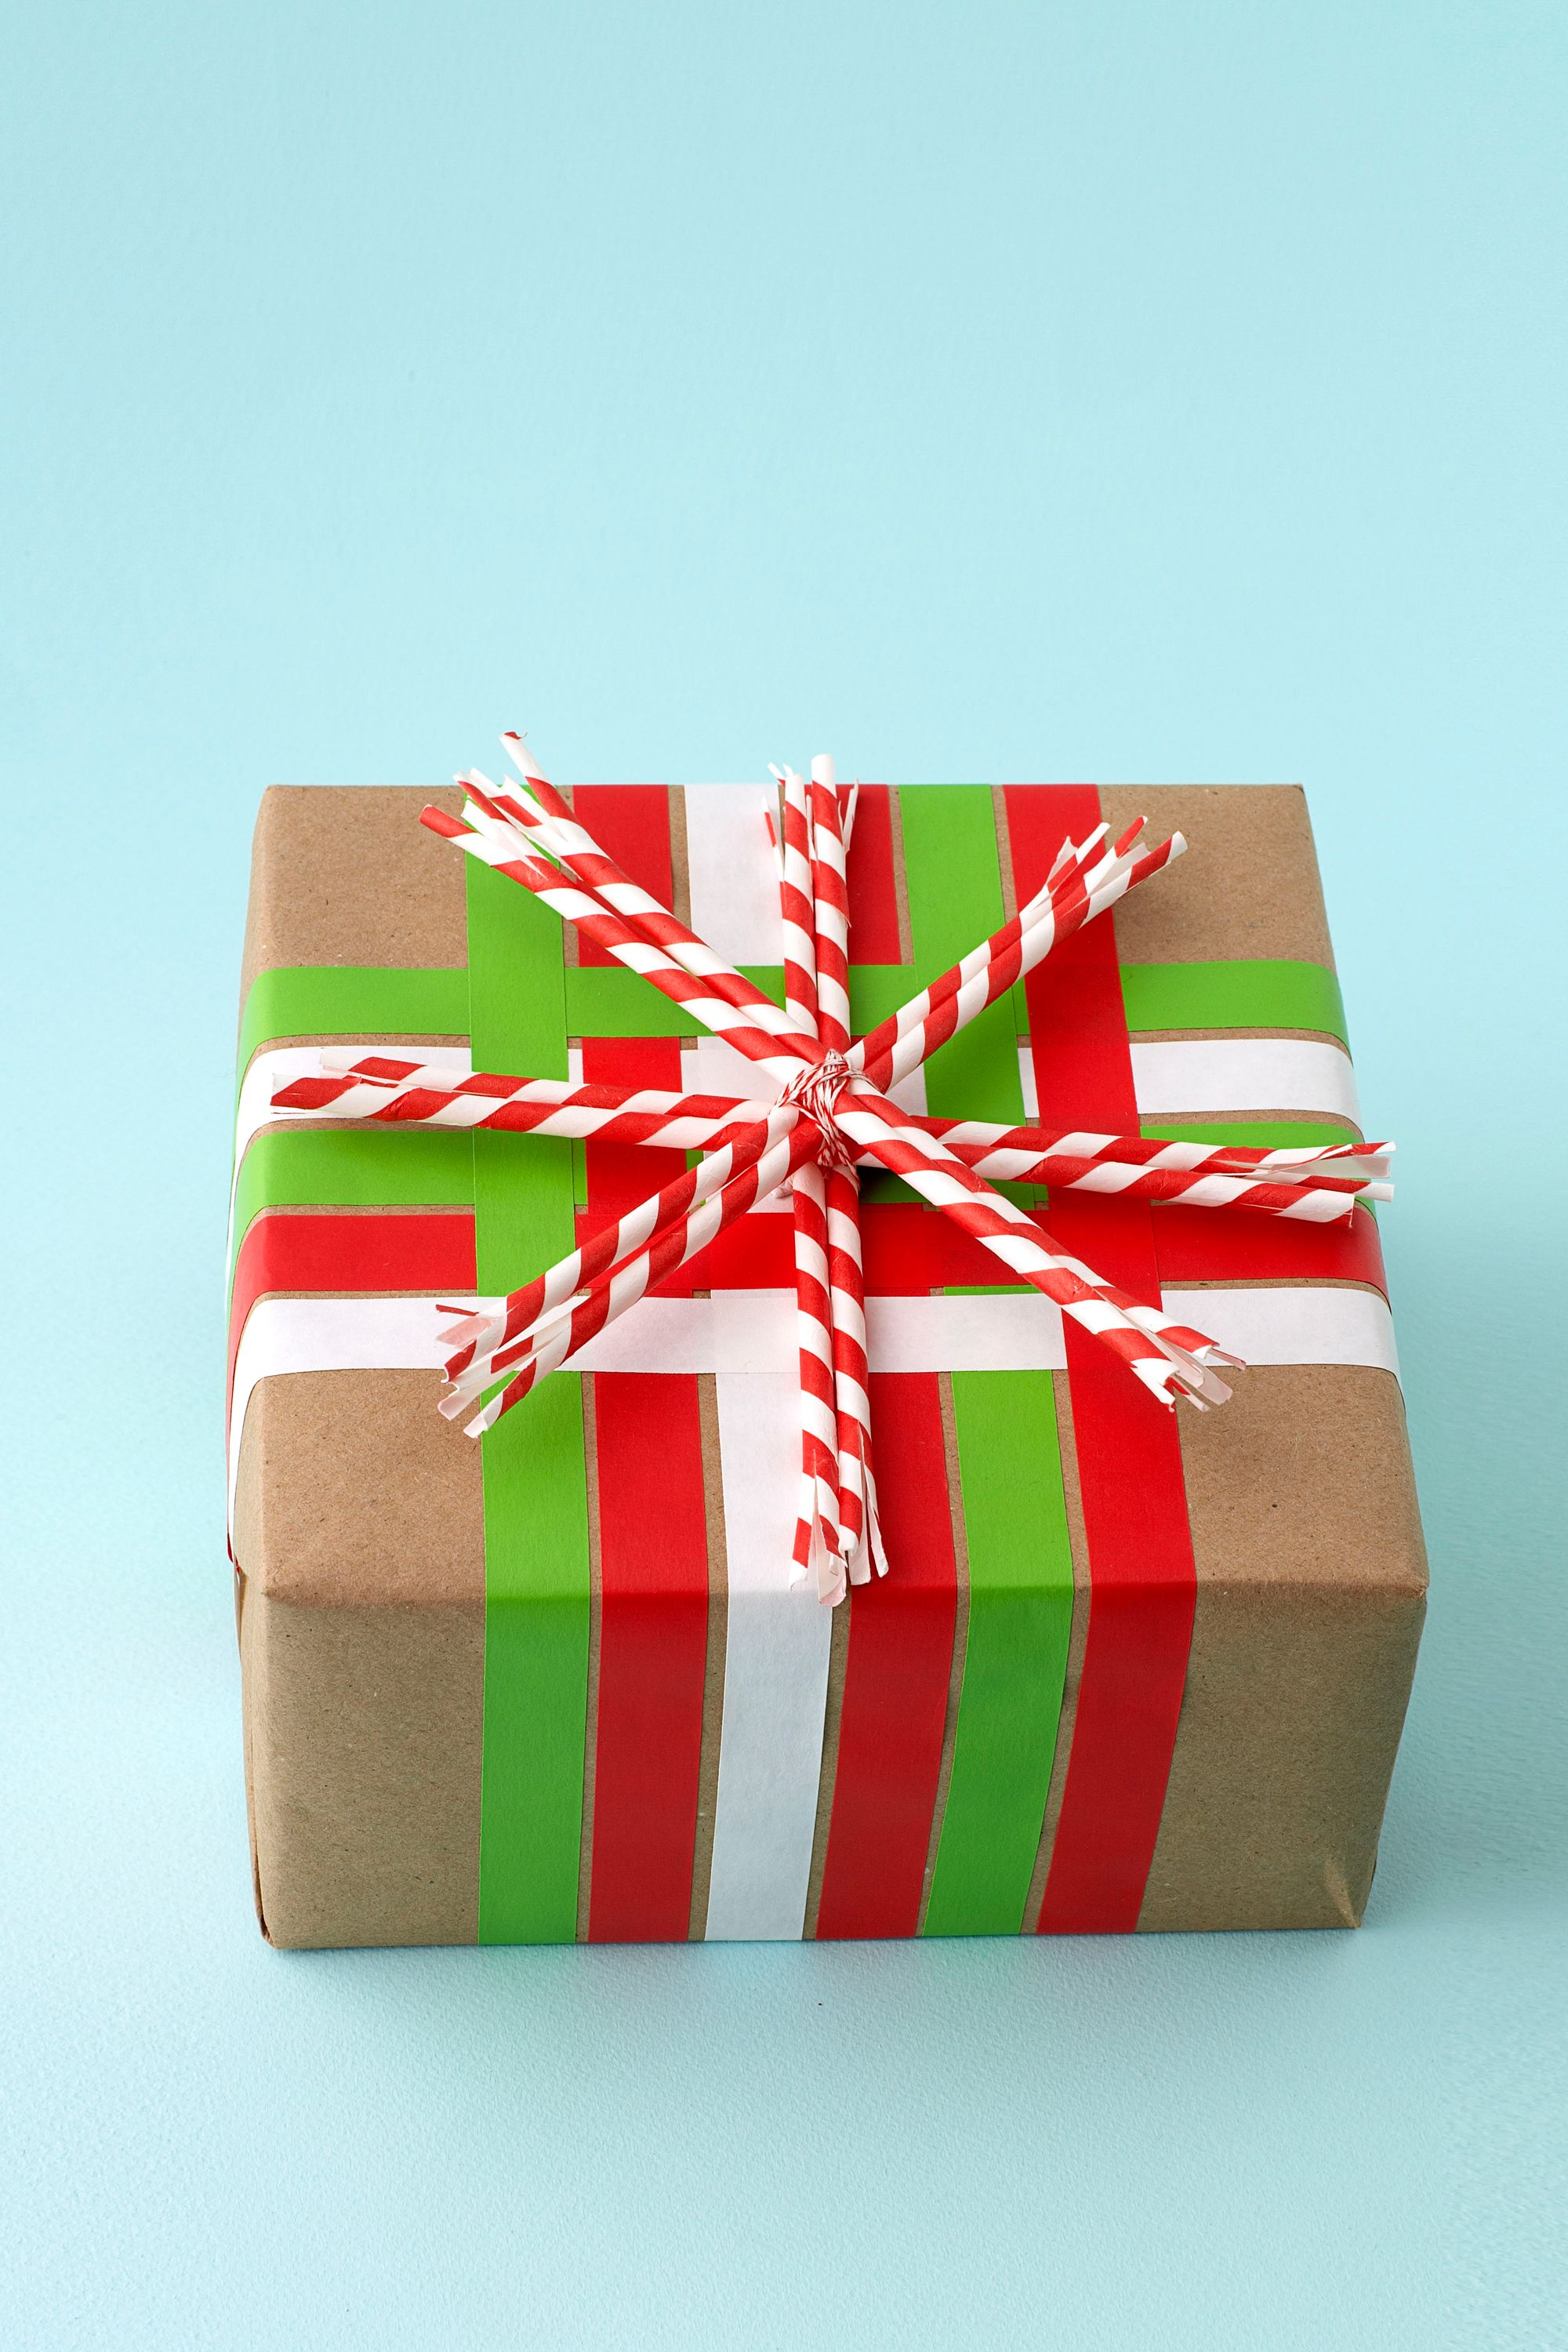 30 Unique Gift Wring Ideas For Christmas How To Wrap Holiday Presents